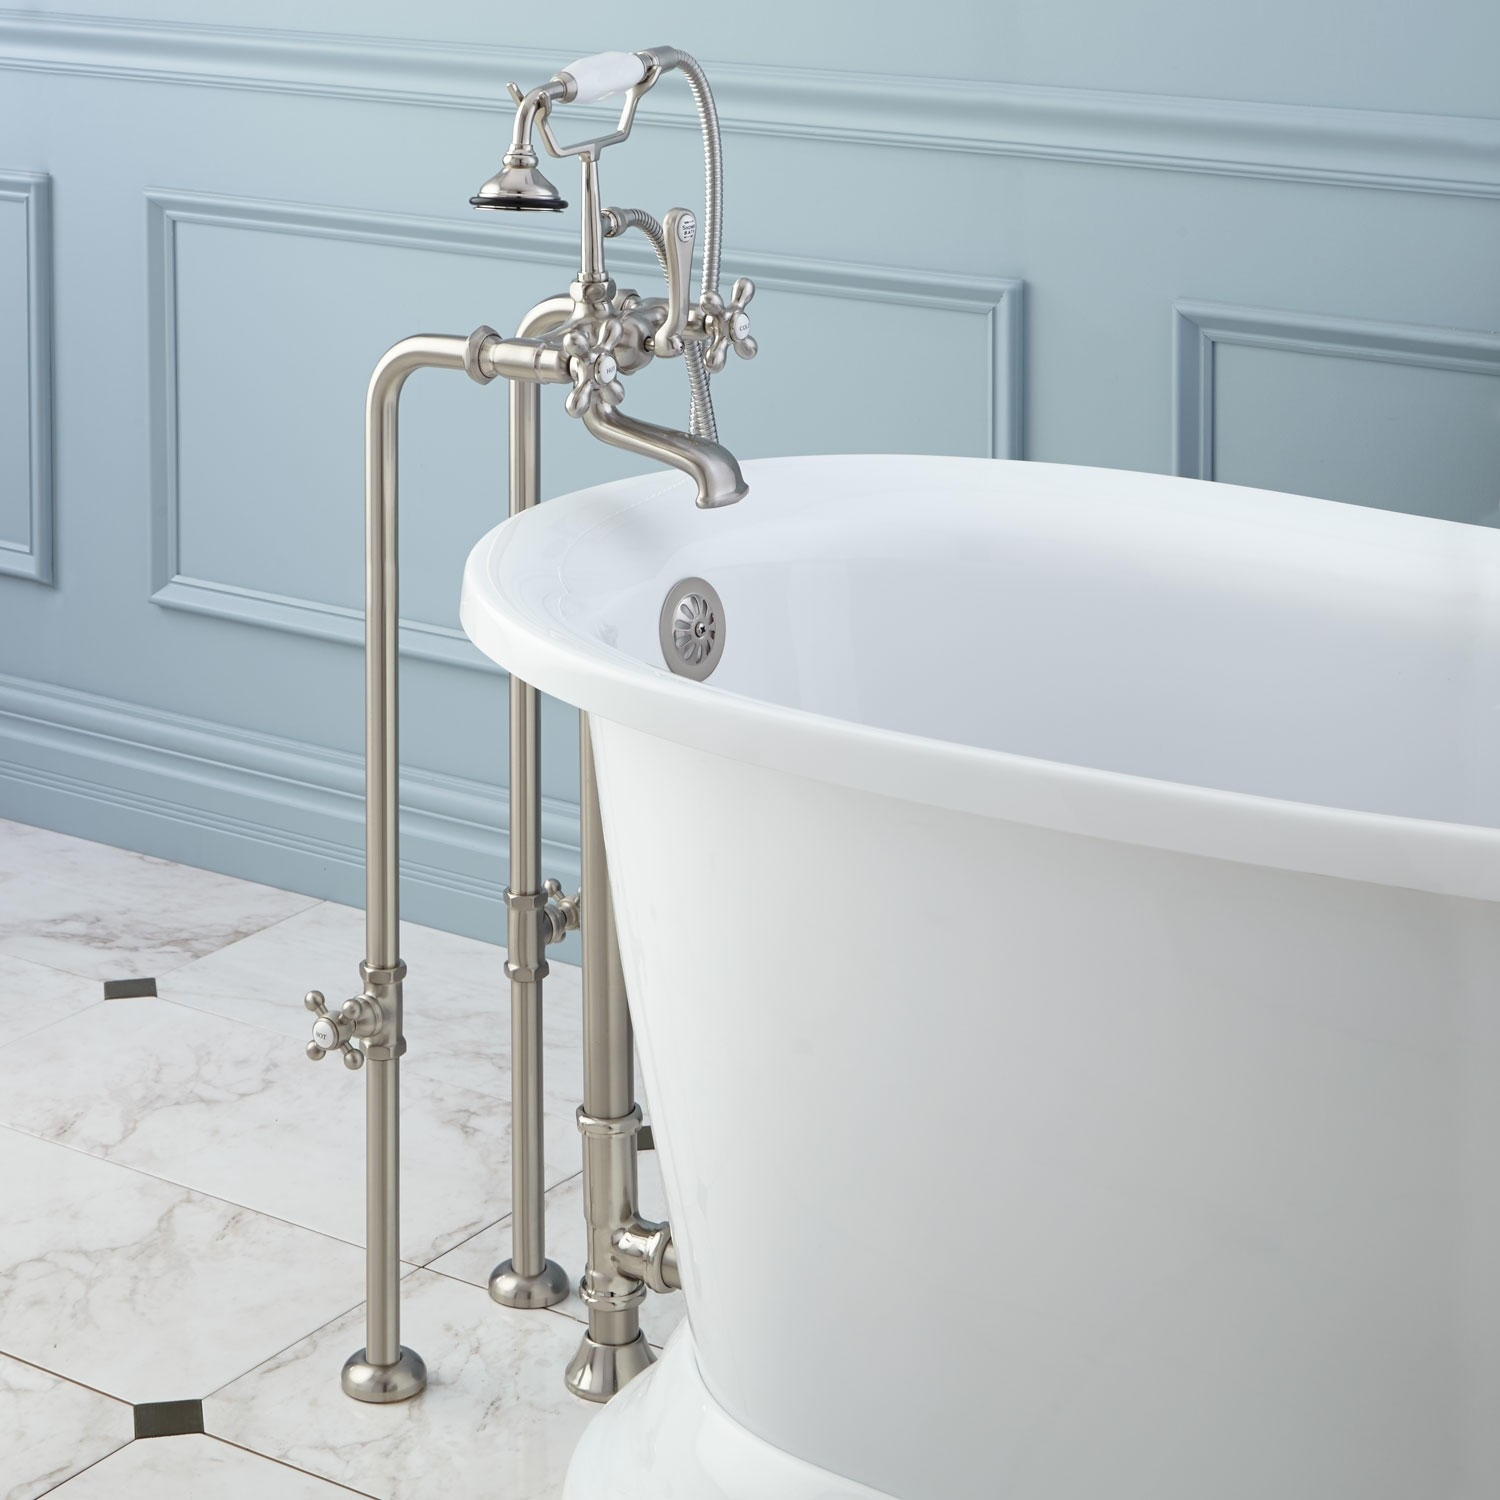 freestanding telephone tub faucet supplies valves and drain throughout dimensions 1500 x 1500